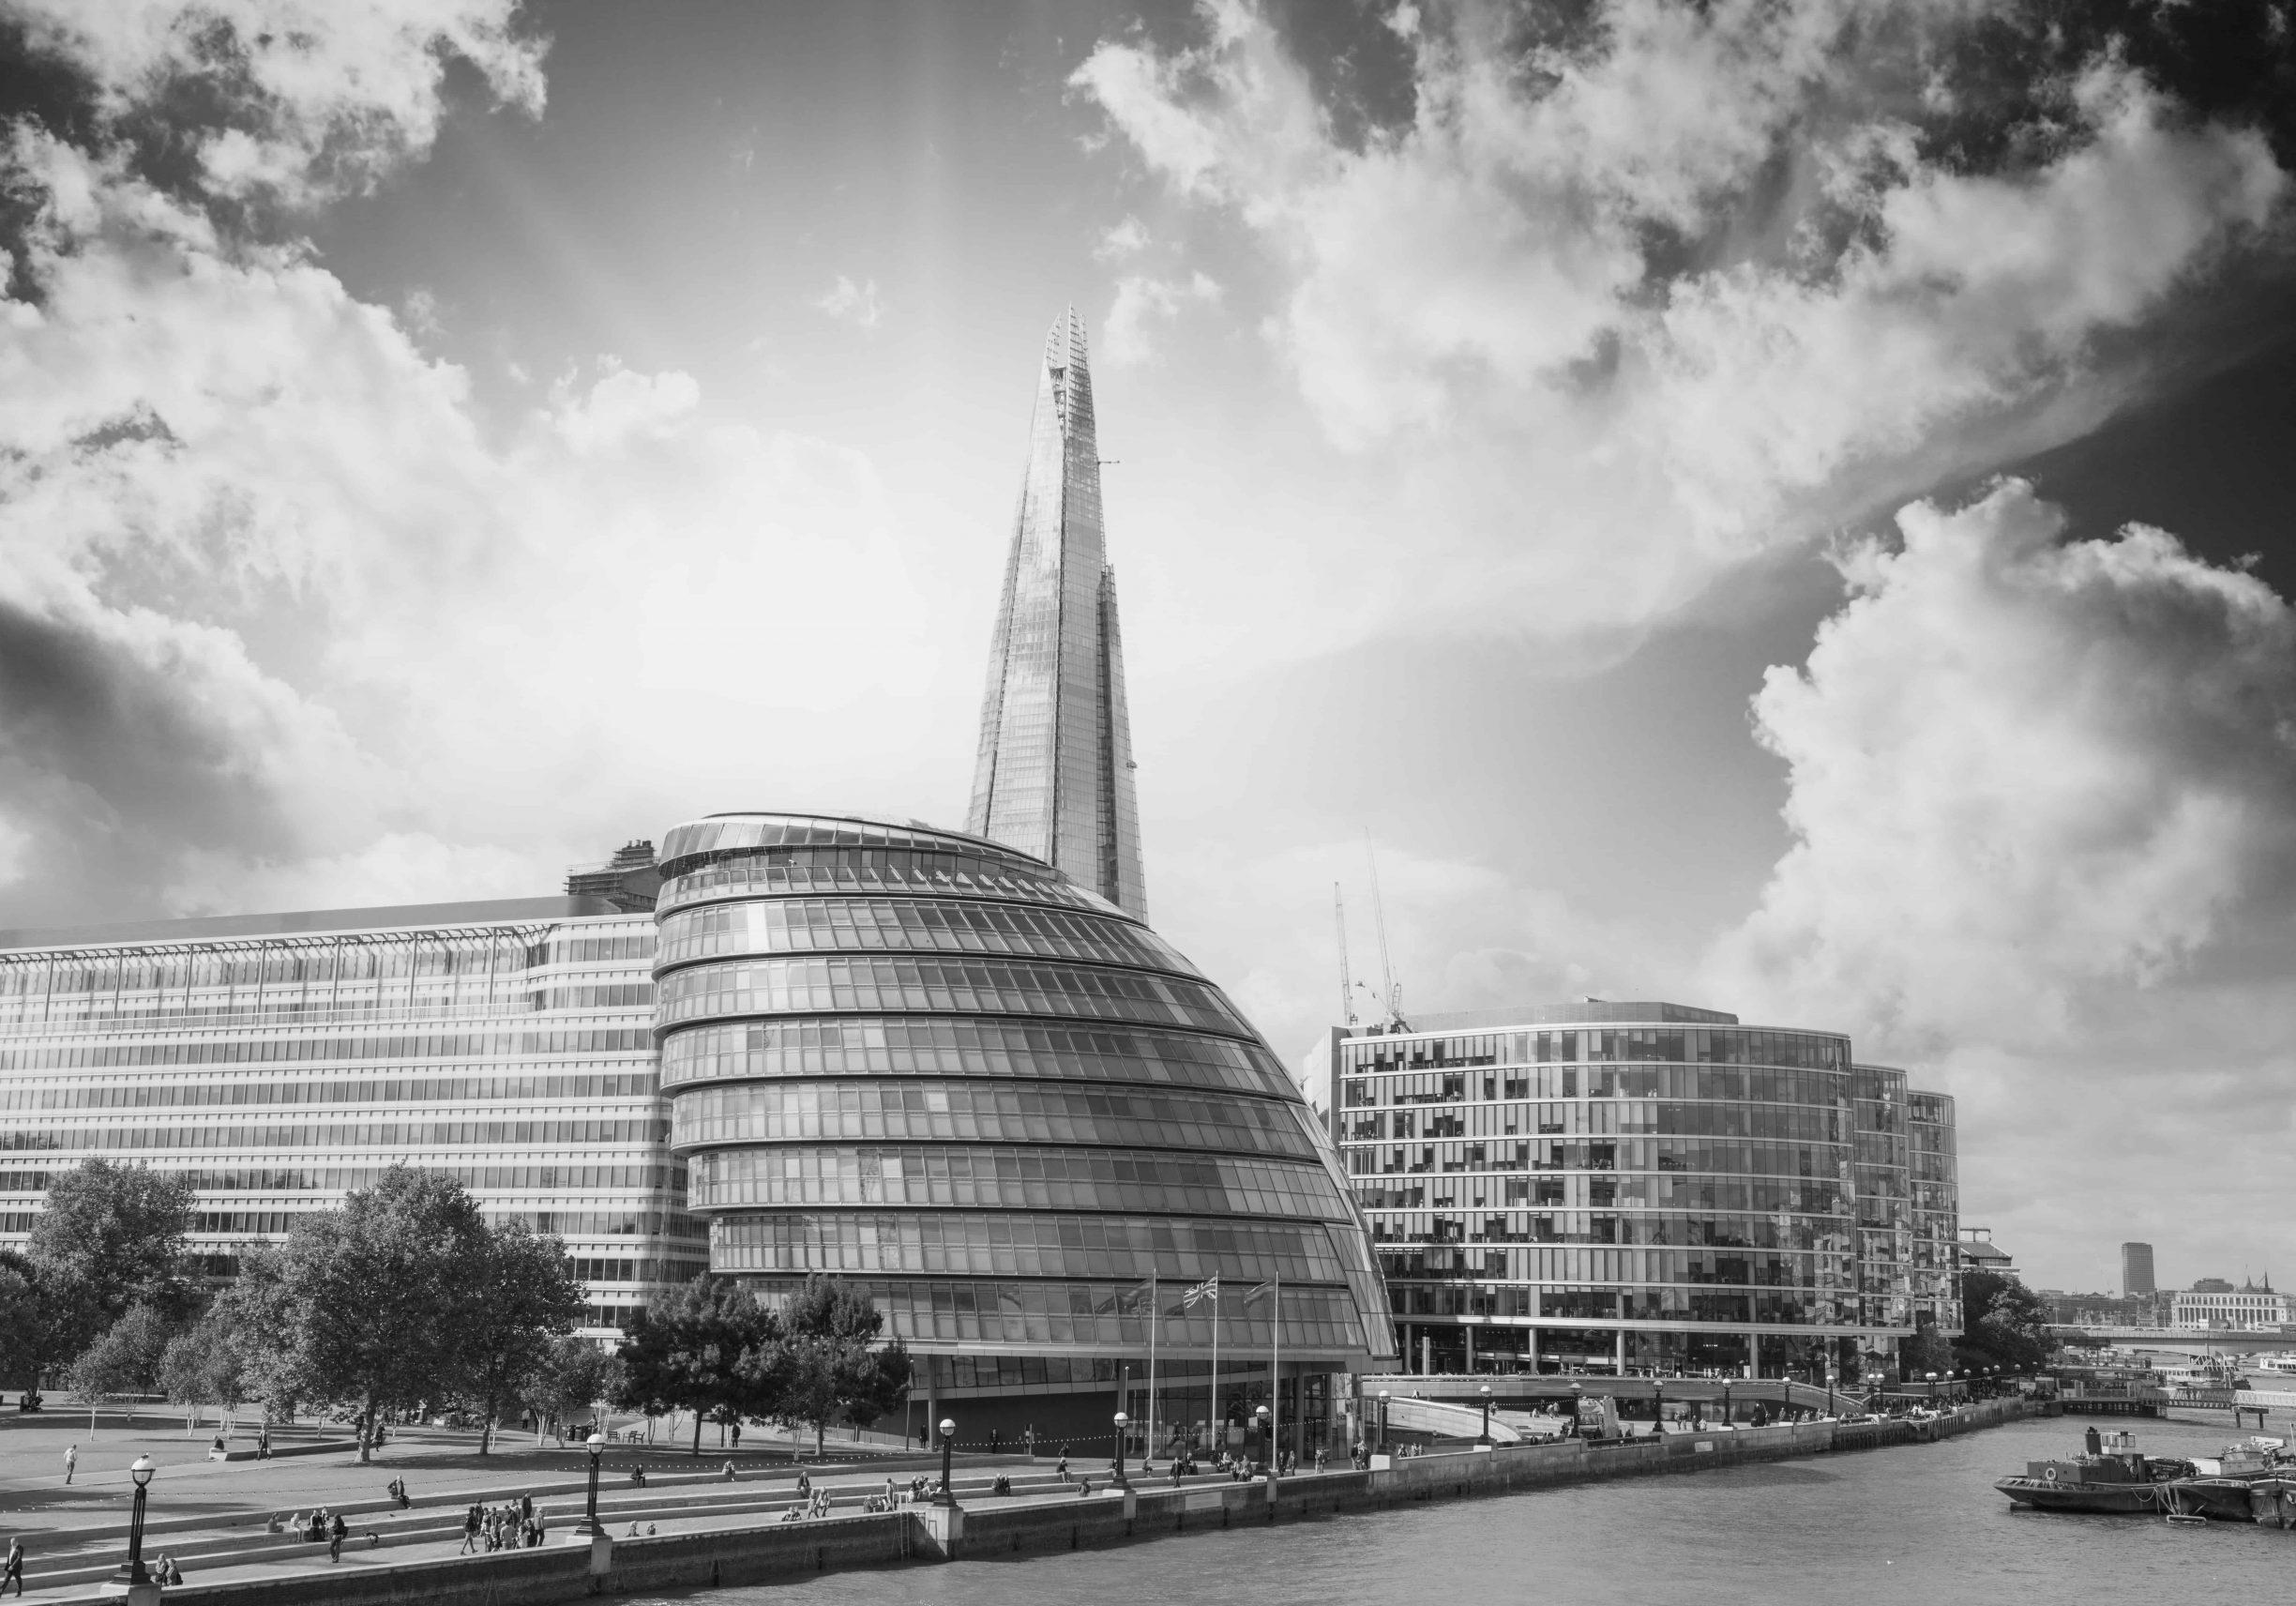 New London city hall with Thames river and cloudy sky, panoramic view from Tower Bridge - UK